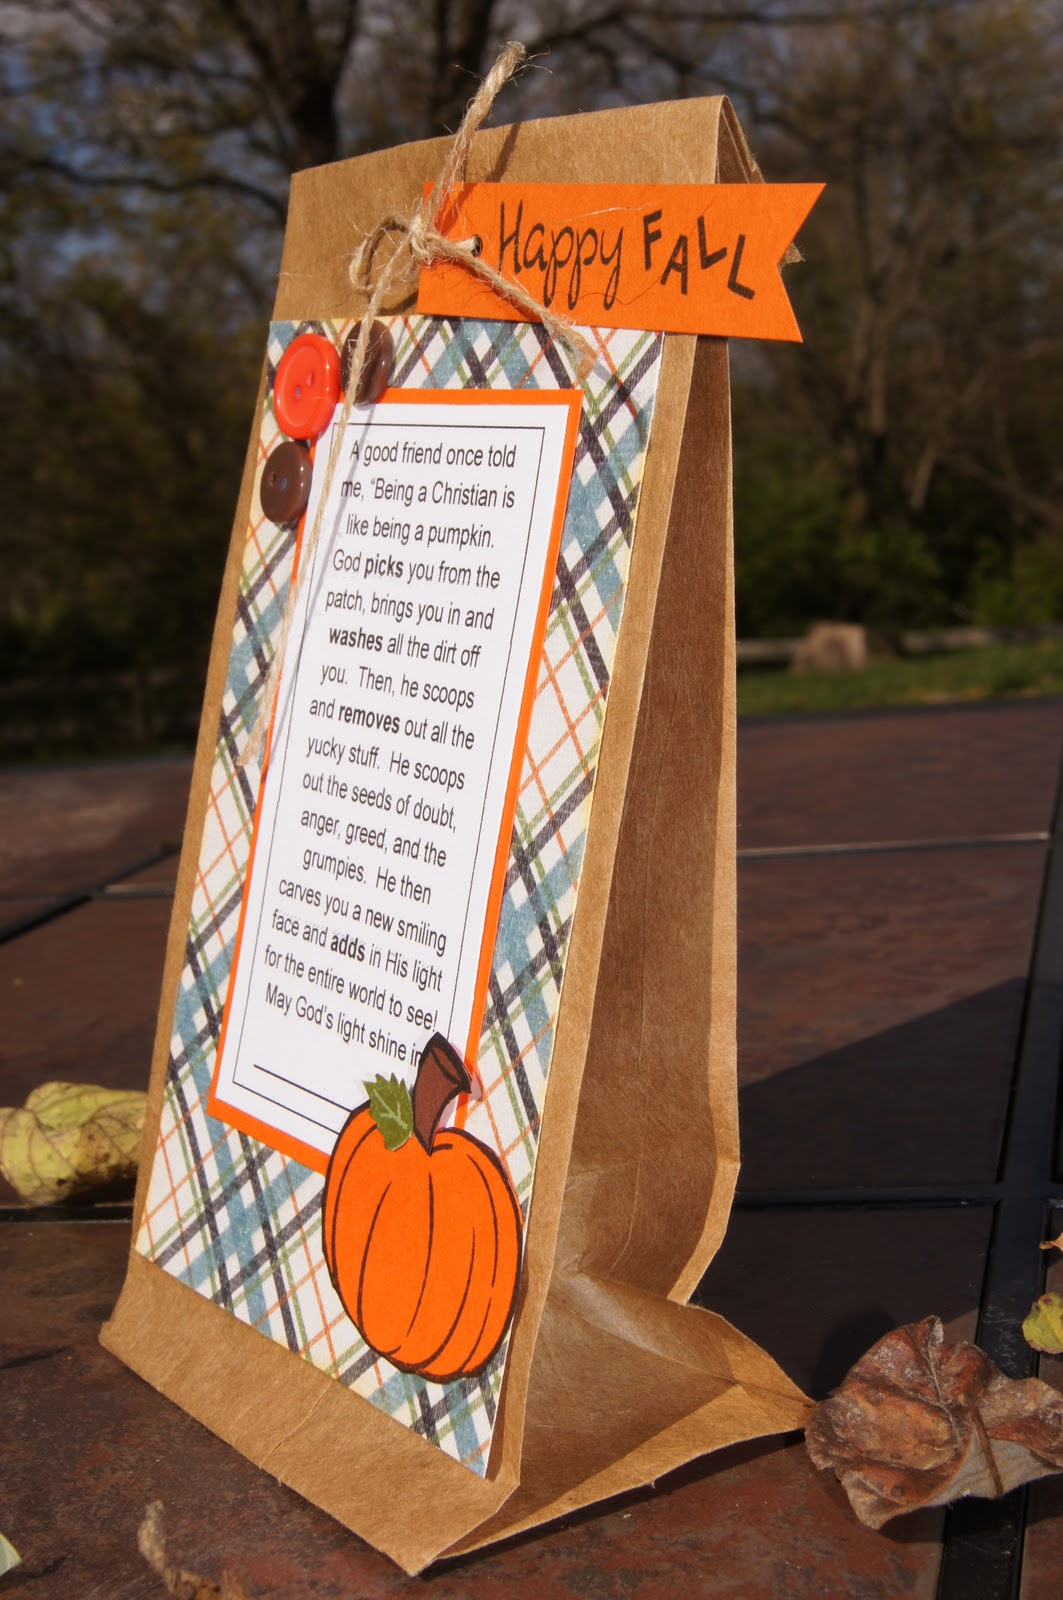 Like the Bunny Ear Bags we posted last week, these Paper Carrot Treat Bags are are a great alternative for holding candy this Easter. They're easy to make and can be put together in a matter of minutes. Hang them up as a surprise for your kiddos on Easter morning or add them to an Easter basket.